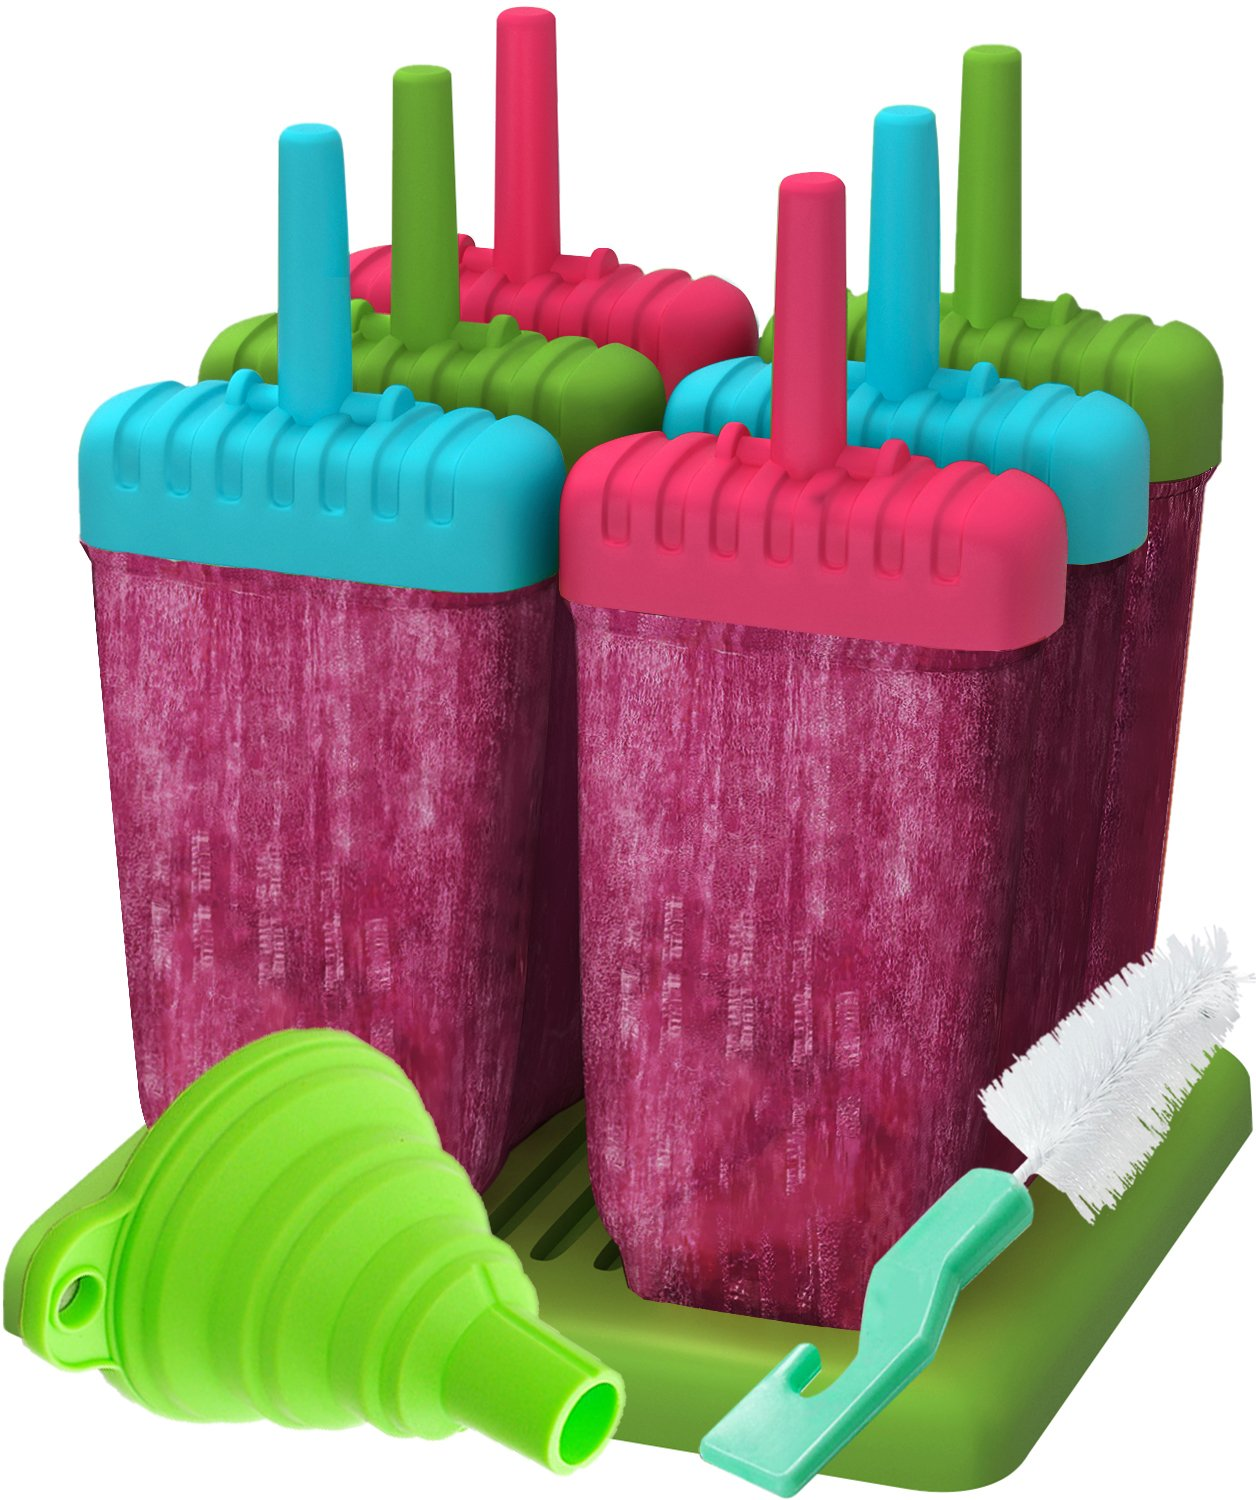 Ozera Reusable Popsicle Molds Ice Pop Molds Maker - Set of 6 - With Silicone Funnel & Cleaning Brush - Three Colors